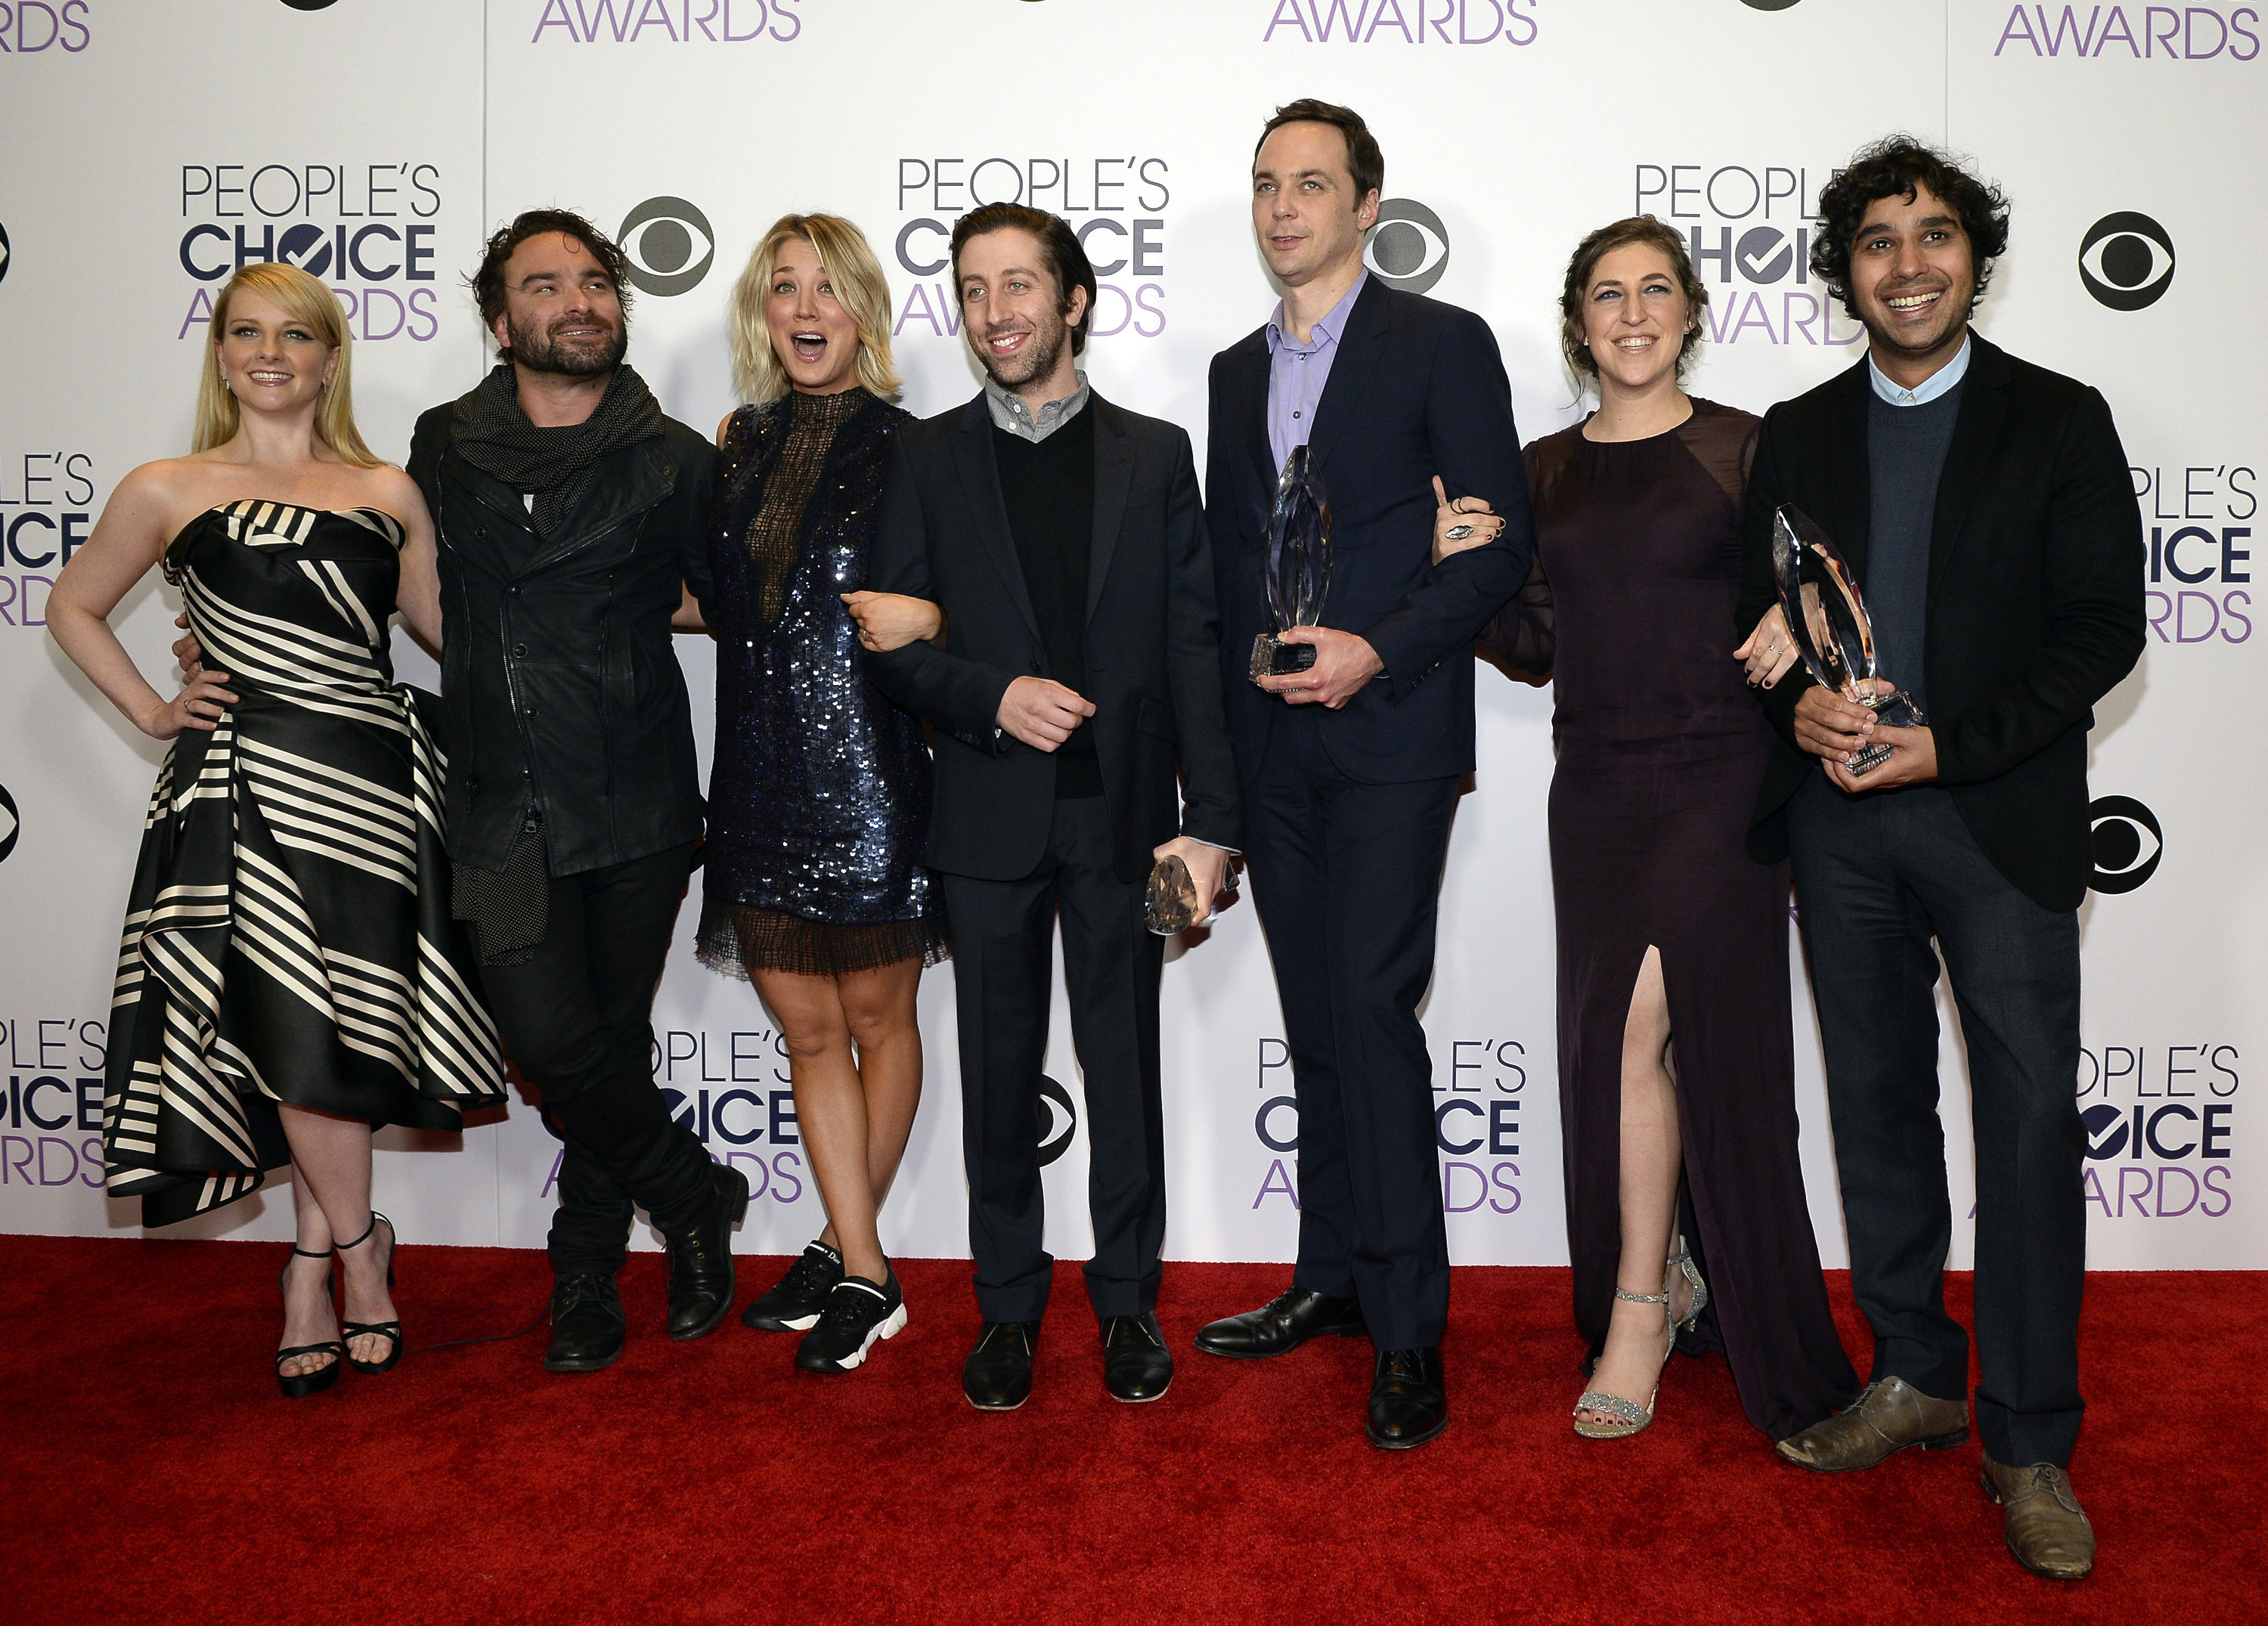 Actors Melissa Rauch, Johnny Galecki, Kaley Cuoco, Simon Helberg, Jim Parsons, Mayim Bialik and Kunal Nayyar, winners of Favorite Network TV Comedy and Favorite TV Show for 'The Big Bang Theory', pose in the press room during the People's Choice Awards 2016 at Microsoft Theater on January 6, 2016 in Los Angeles, California. (Photo by Kevork Djansezian/Getty Images)